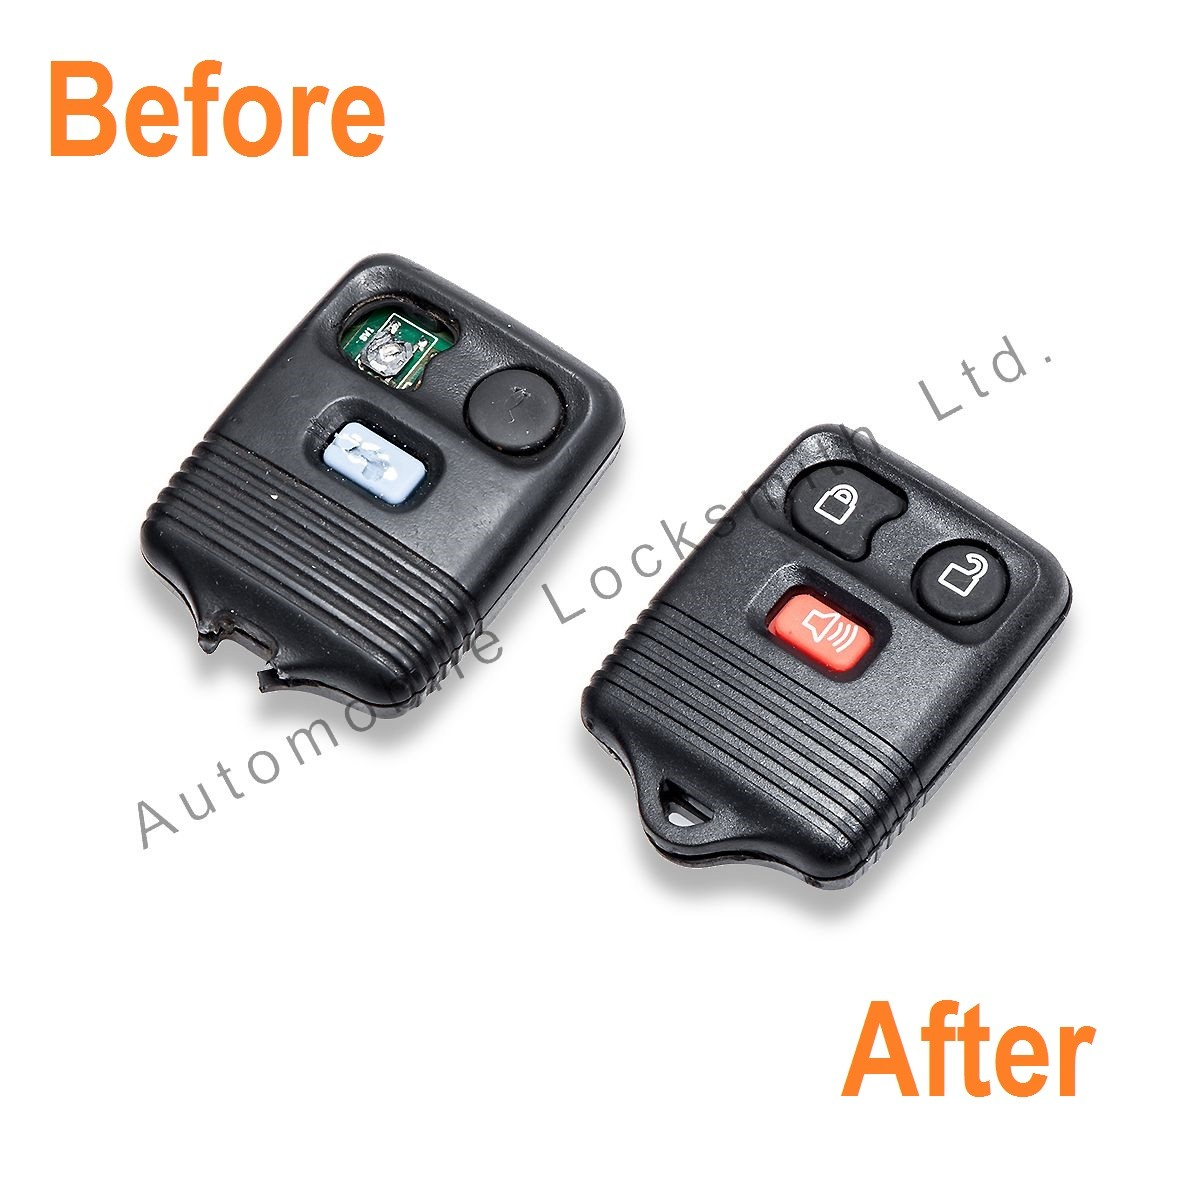 Repair service for Ford 2-3 button remote alarm key